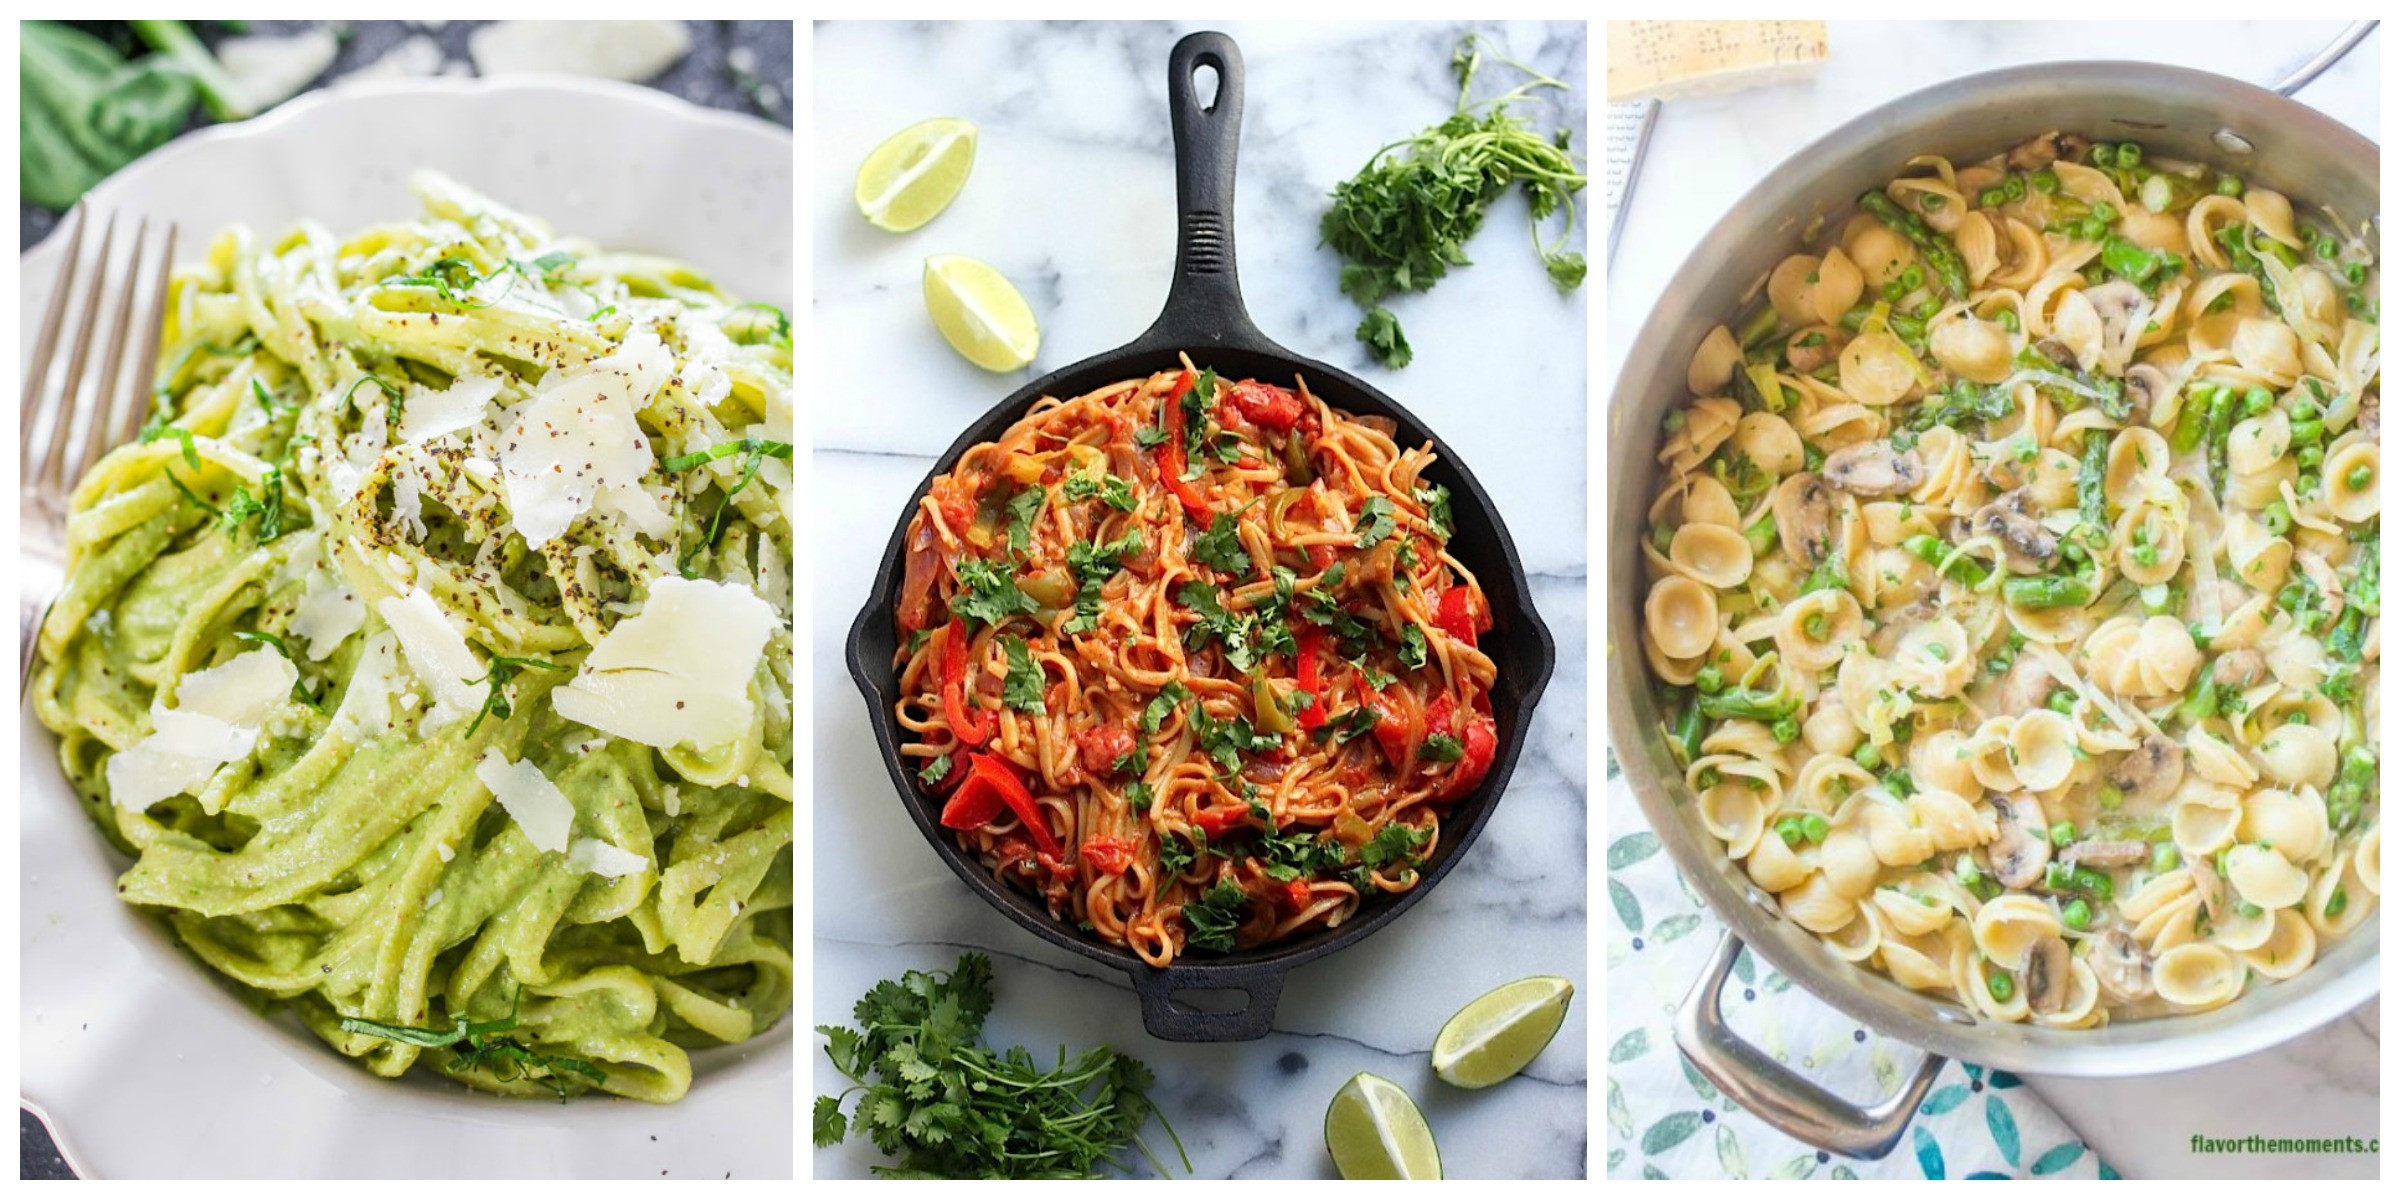 Light Dinner Ideas For Two  25 Healthy Pasta Recipes Light Pasta Dinner Ideas